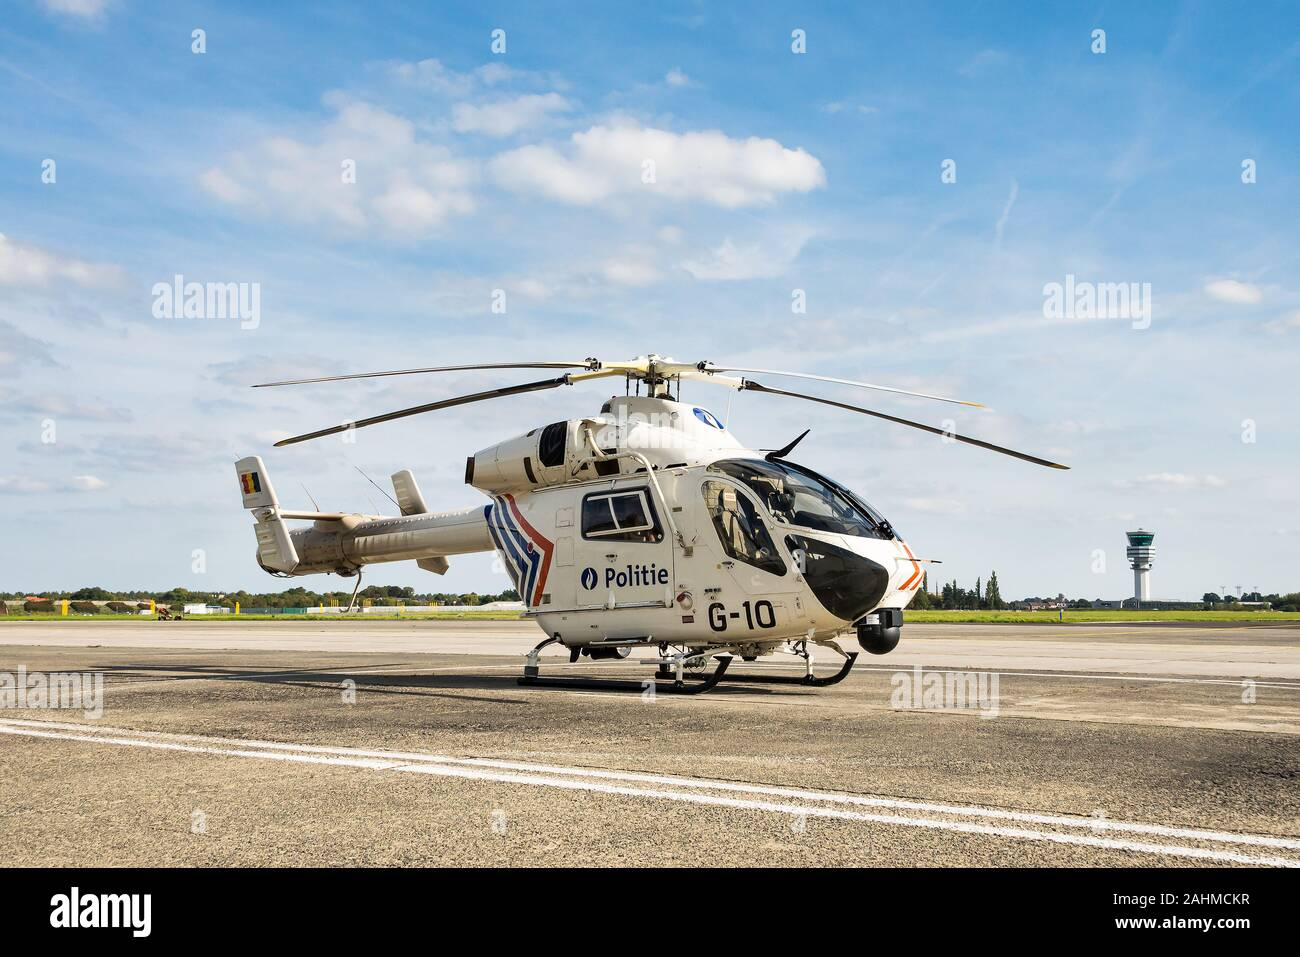 A McDonnell Douglas MD902 helicopter of the Belgian Federal Police. Stock Photo